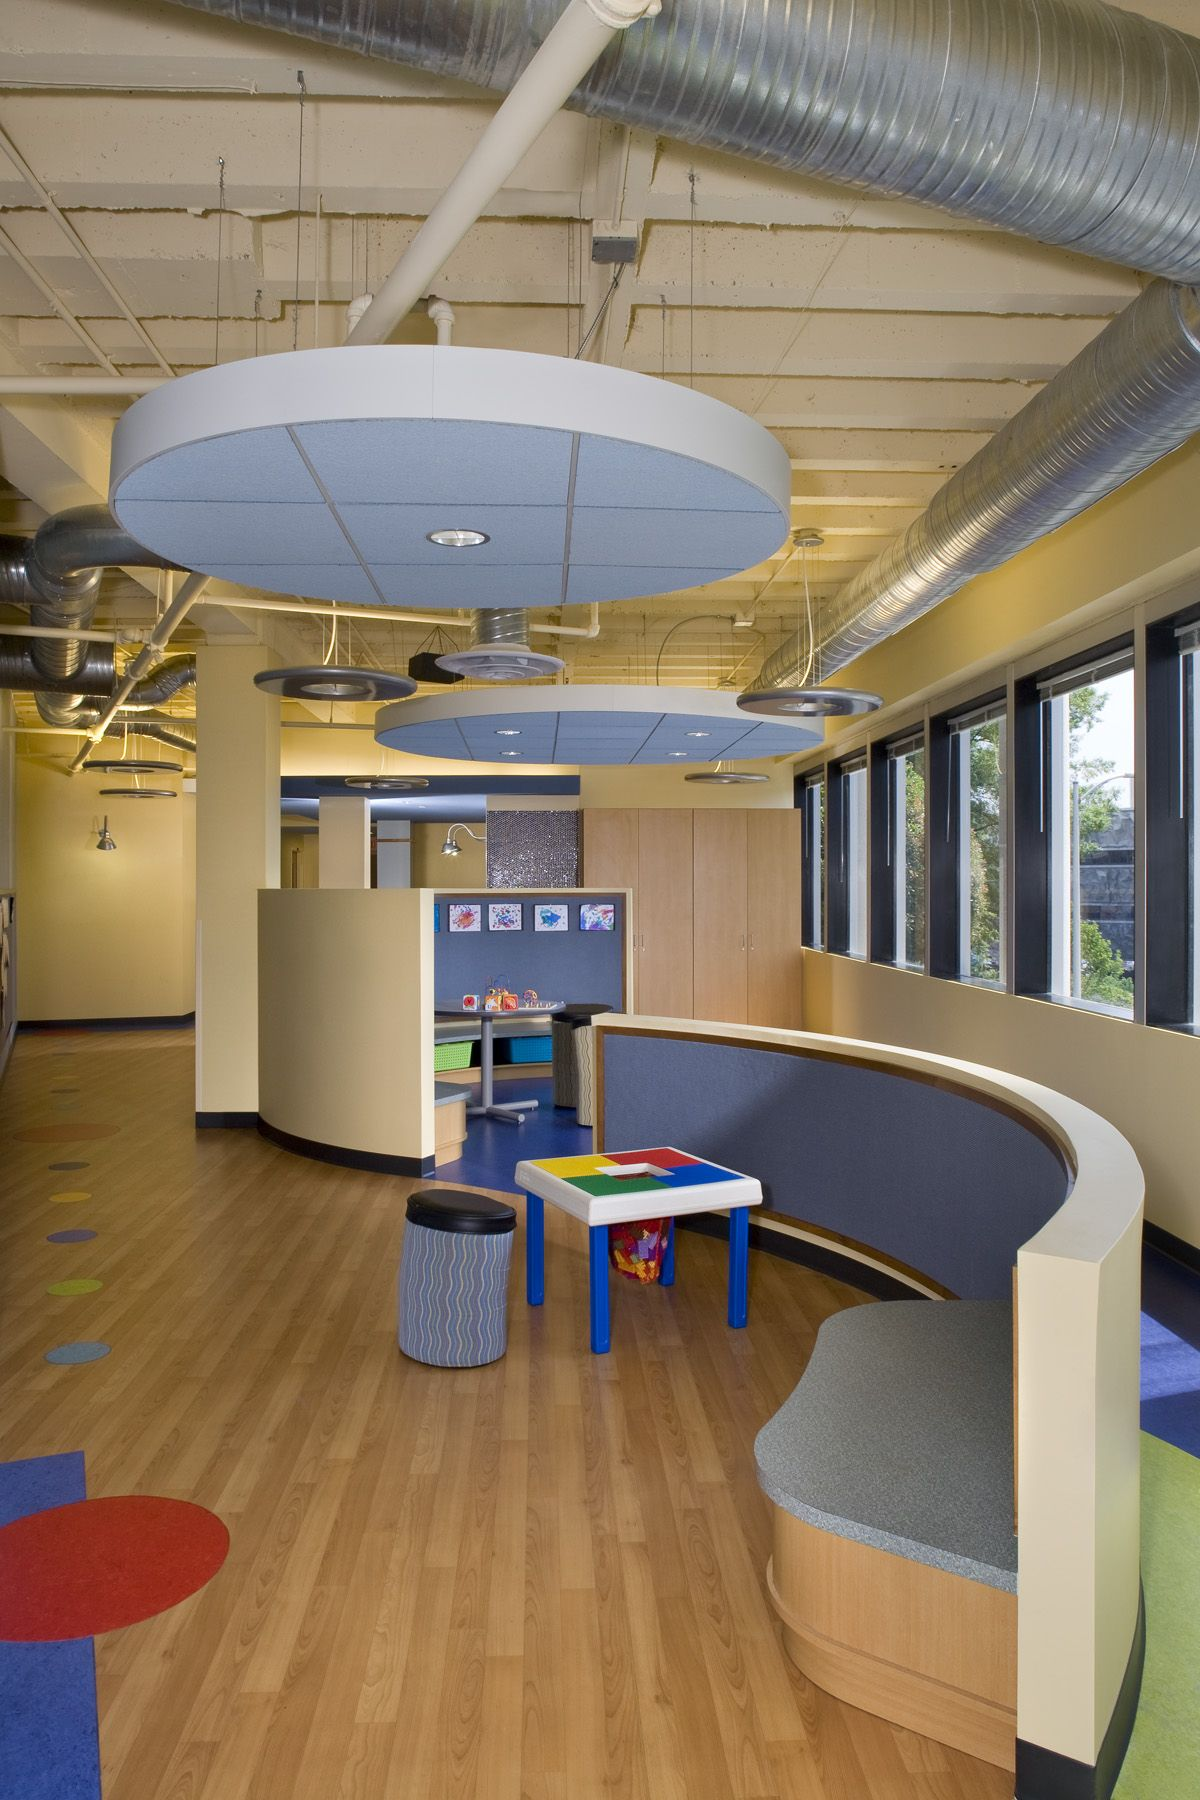 Faison School For Autism Has Received Multiple Awards Including The 2010 Outstanding Design